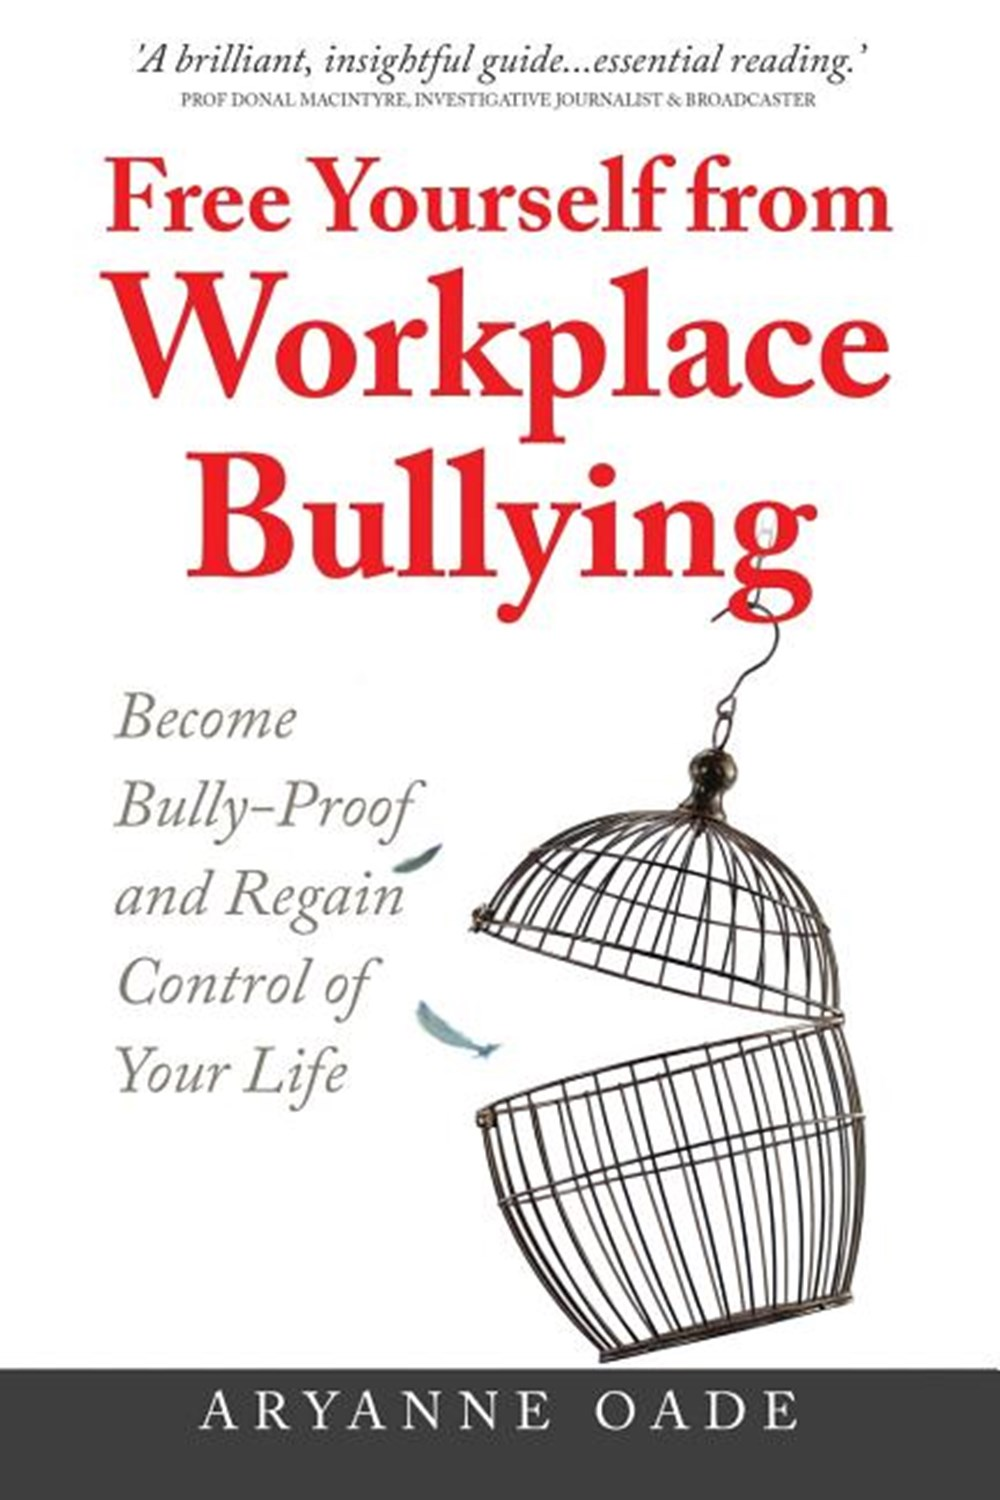 Free Yourself from Workplace Bullying Become Bully-Proof and Regain Control of Your Life